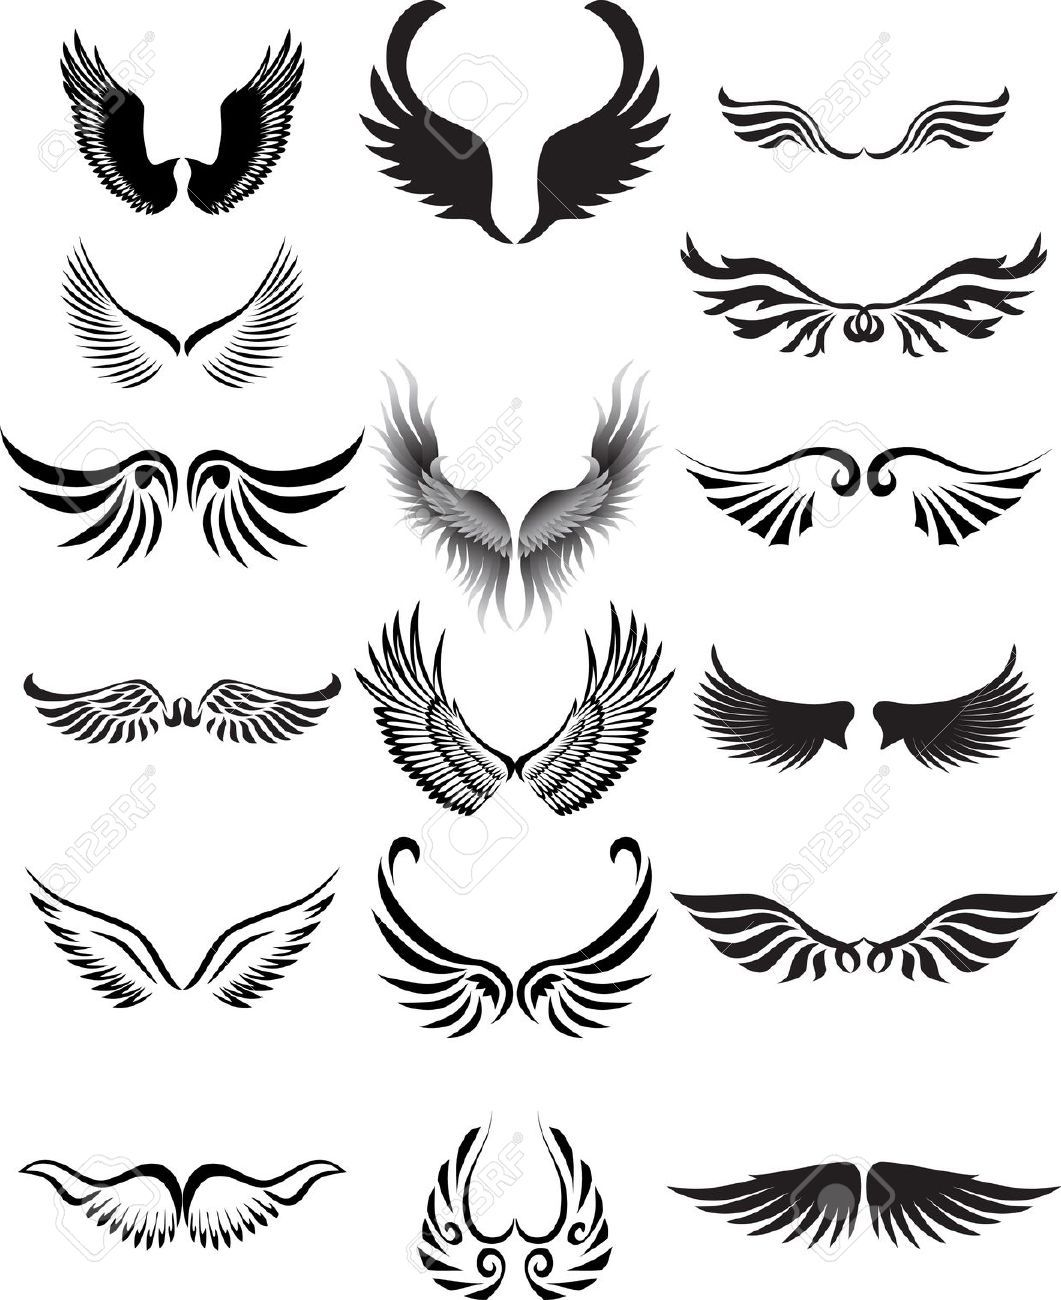 Stock Vector wings